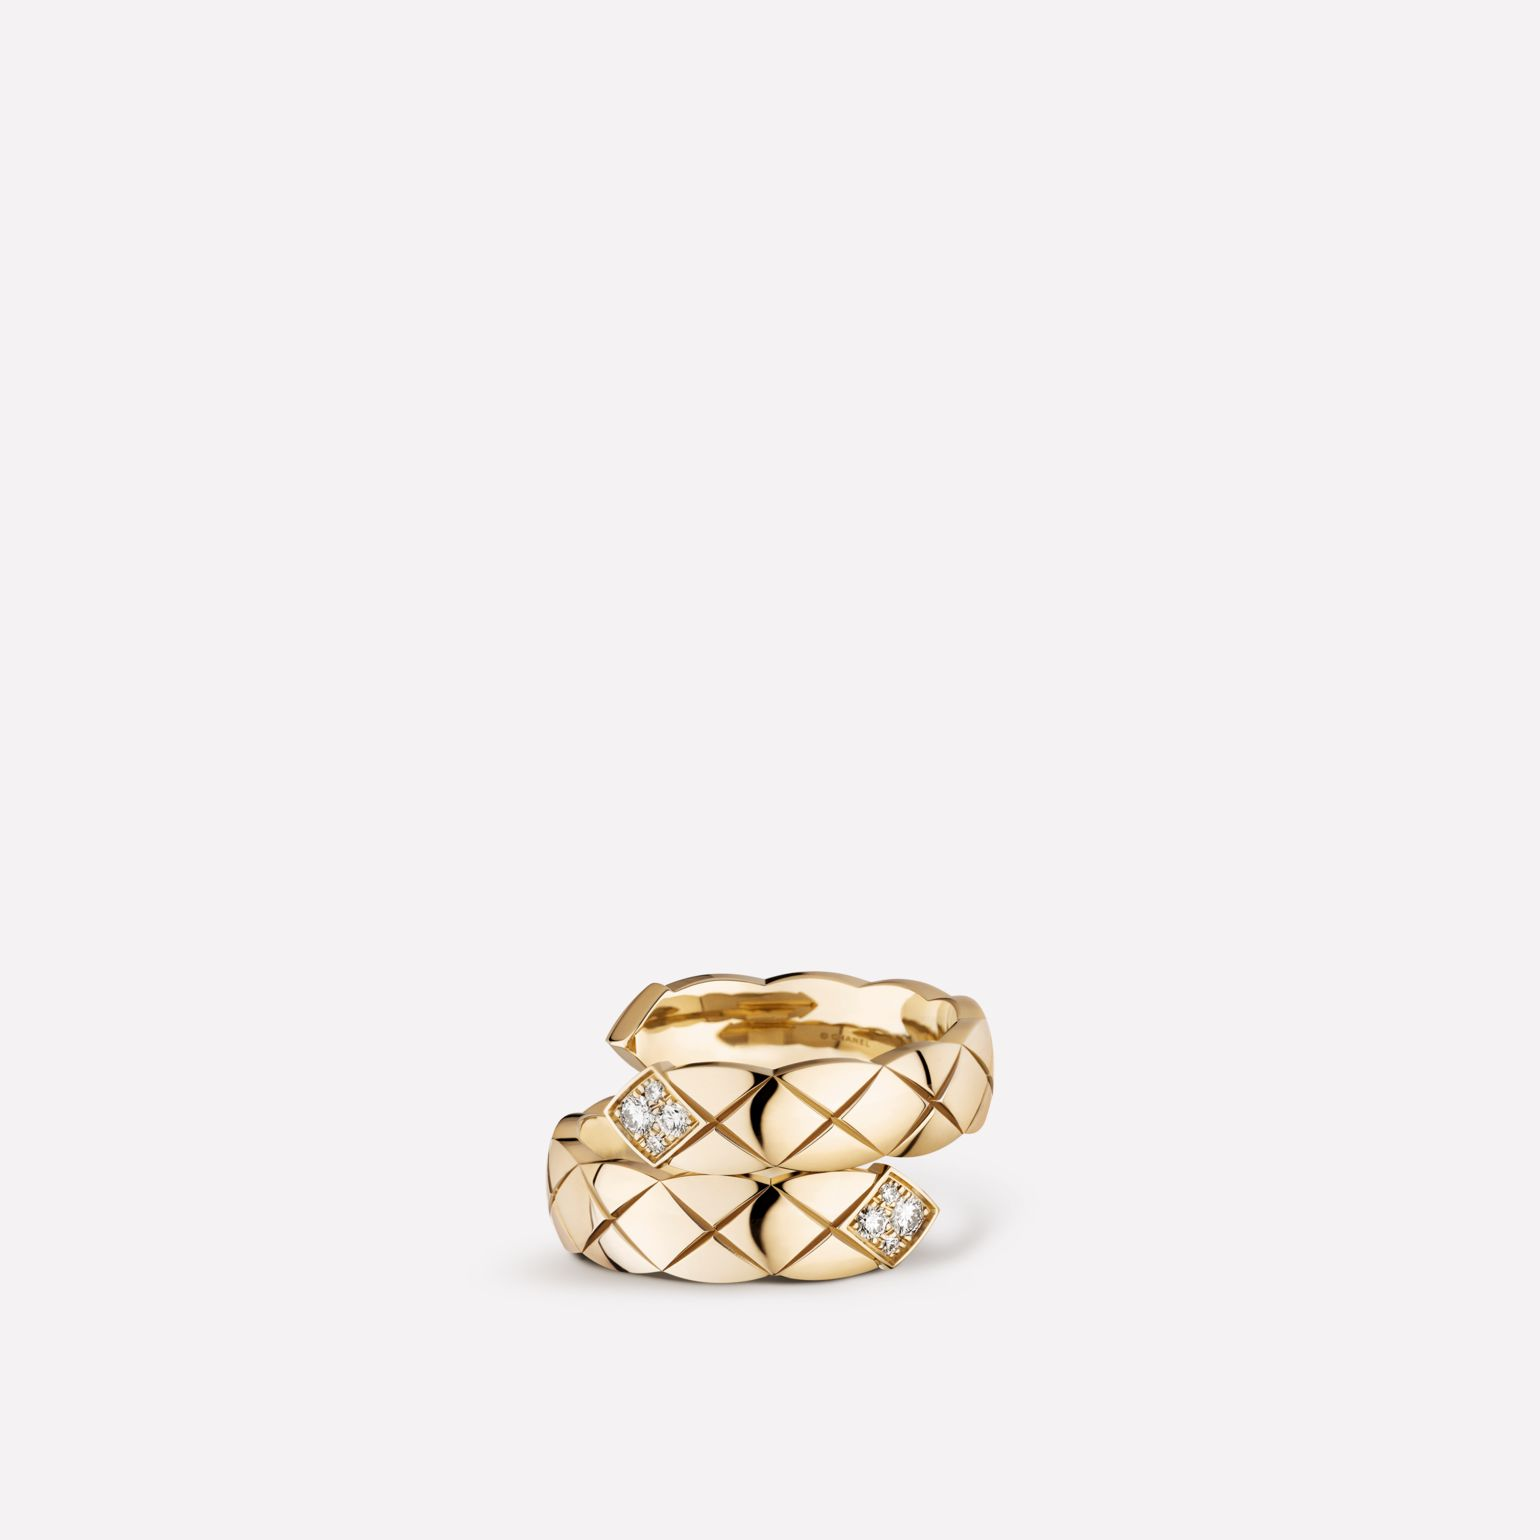 Coco Crush Toi et Moi ring Quilted motif, large version, 18K BEIGE GOLD, diamonds